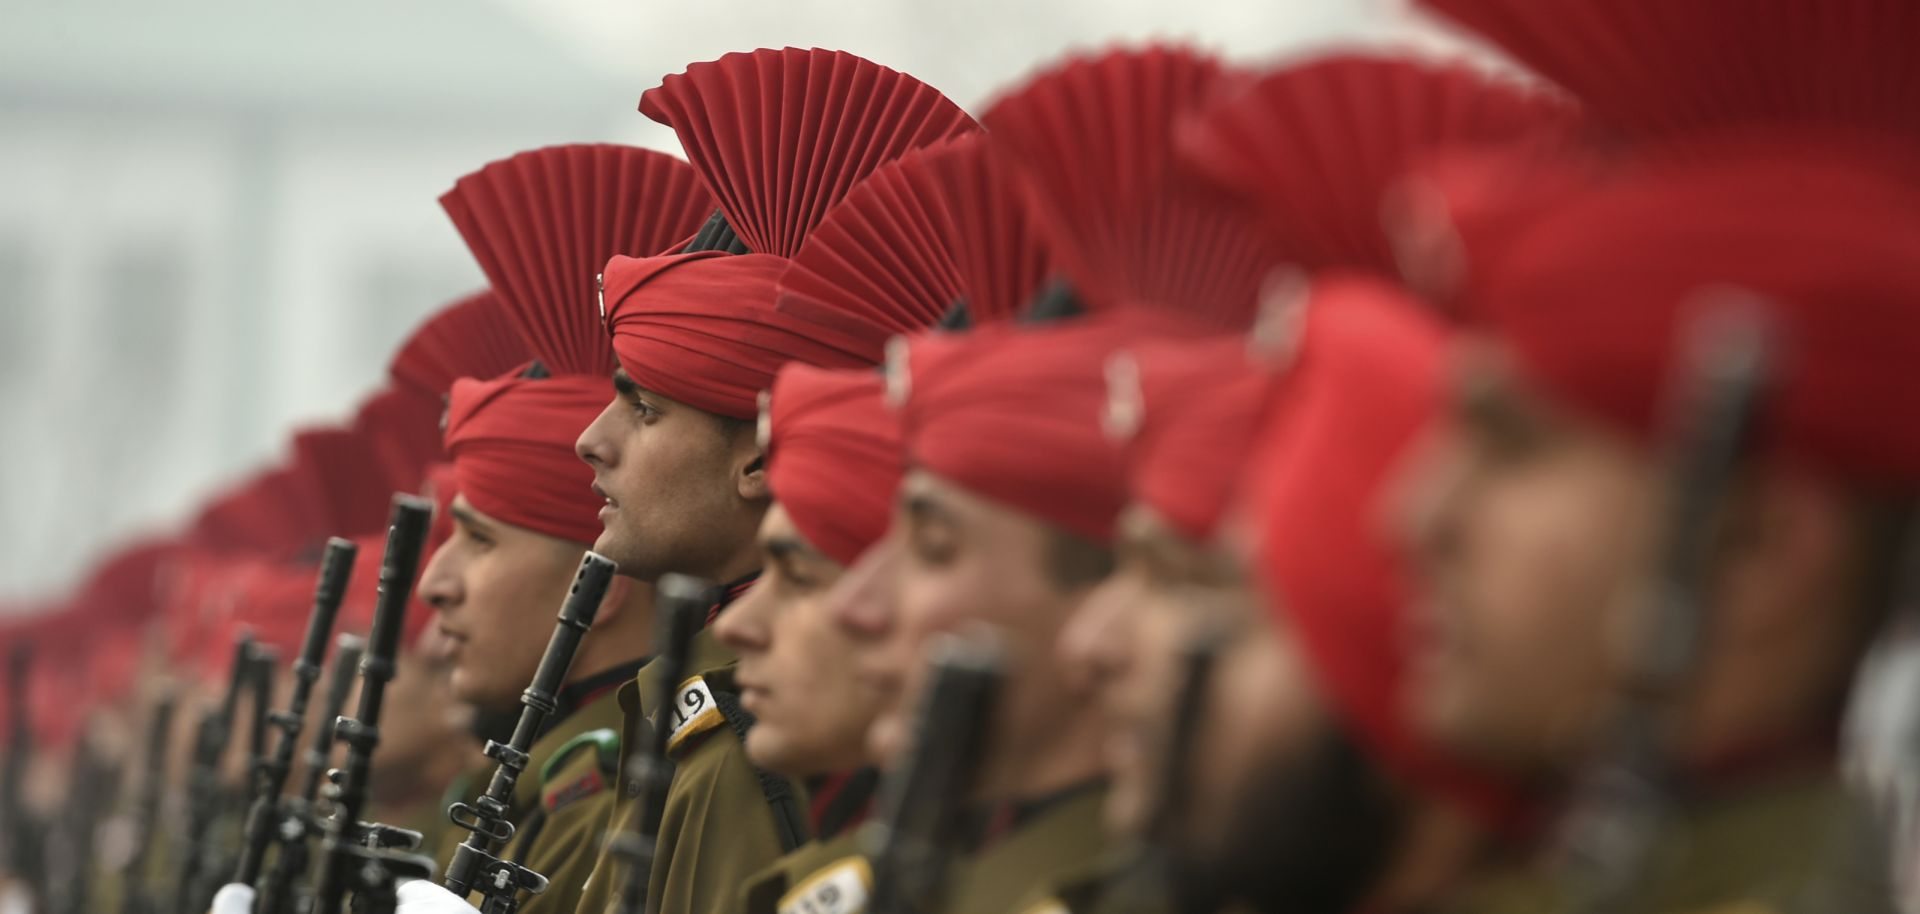 Newly recruited Indian army soldiers from the Jammu and Kashmir Light Infantry (JAKLI) stand in formation during a passing out parade at JAKLI army headquarters in Srinagar on Dec. 7, 2019.